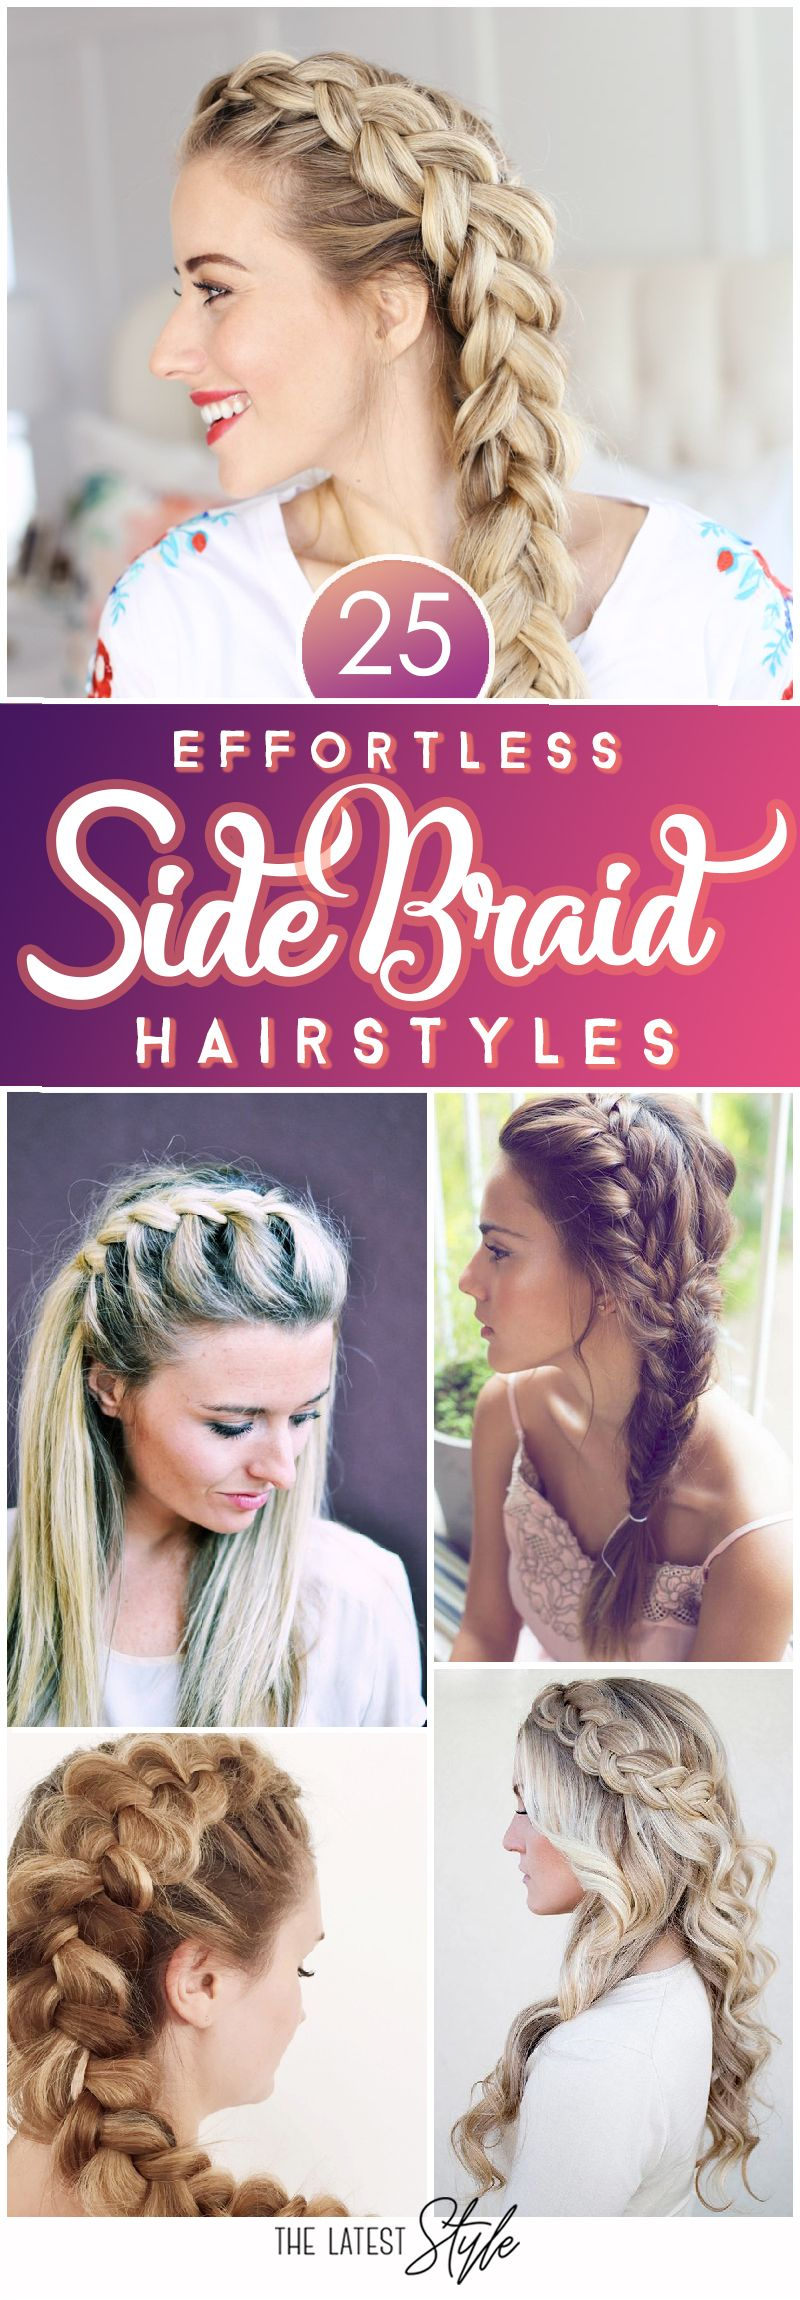 effortless side braid hairstyles to make you feel special cute